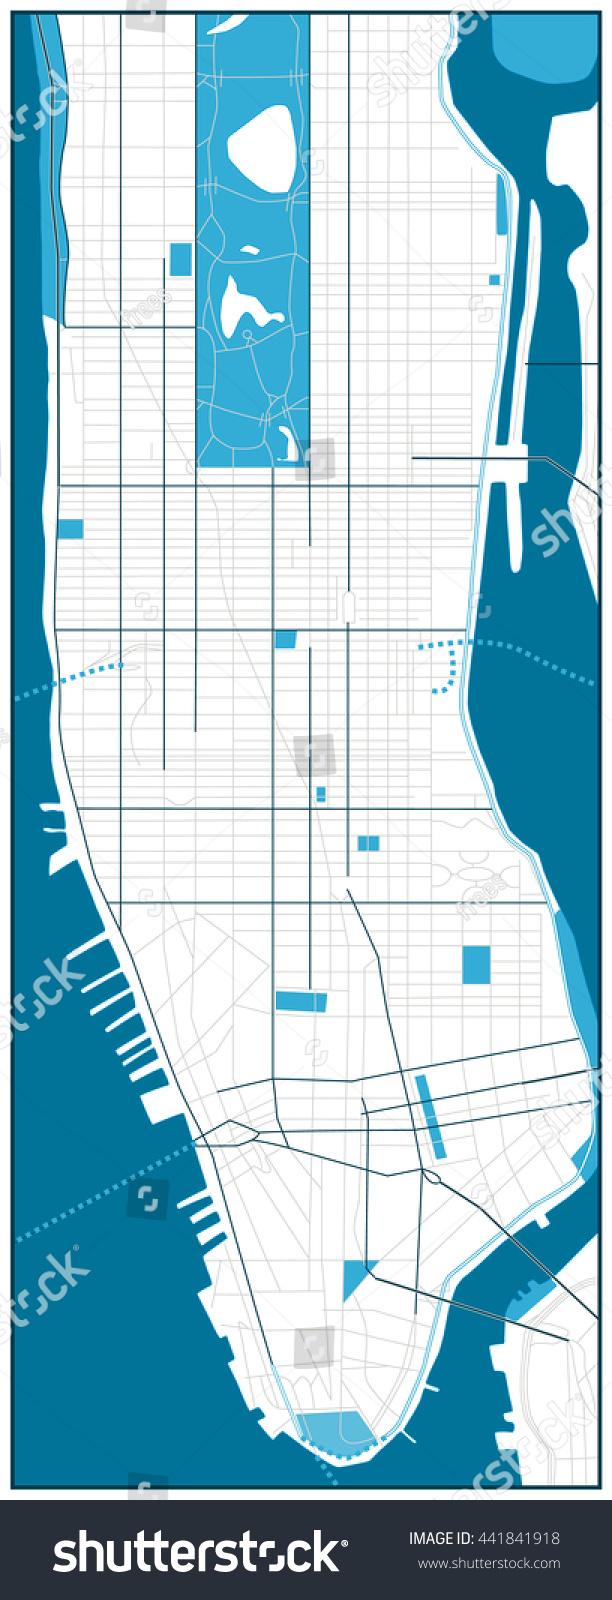 Manhattan Blank Road Map Vector Illustration Vector – Blank Road Map